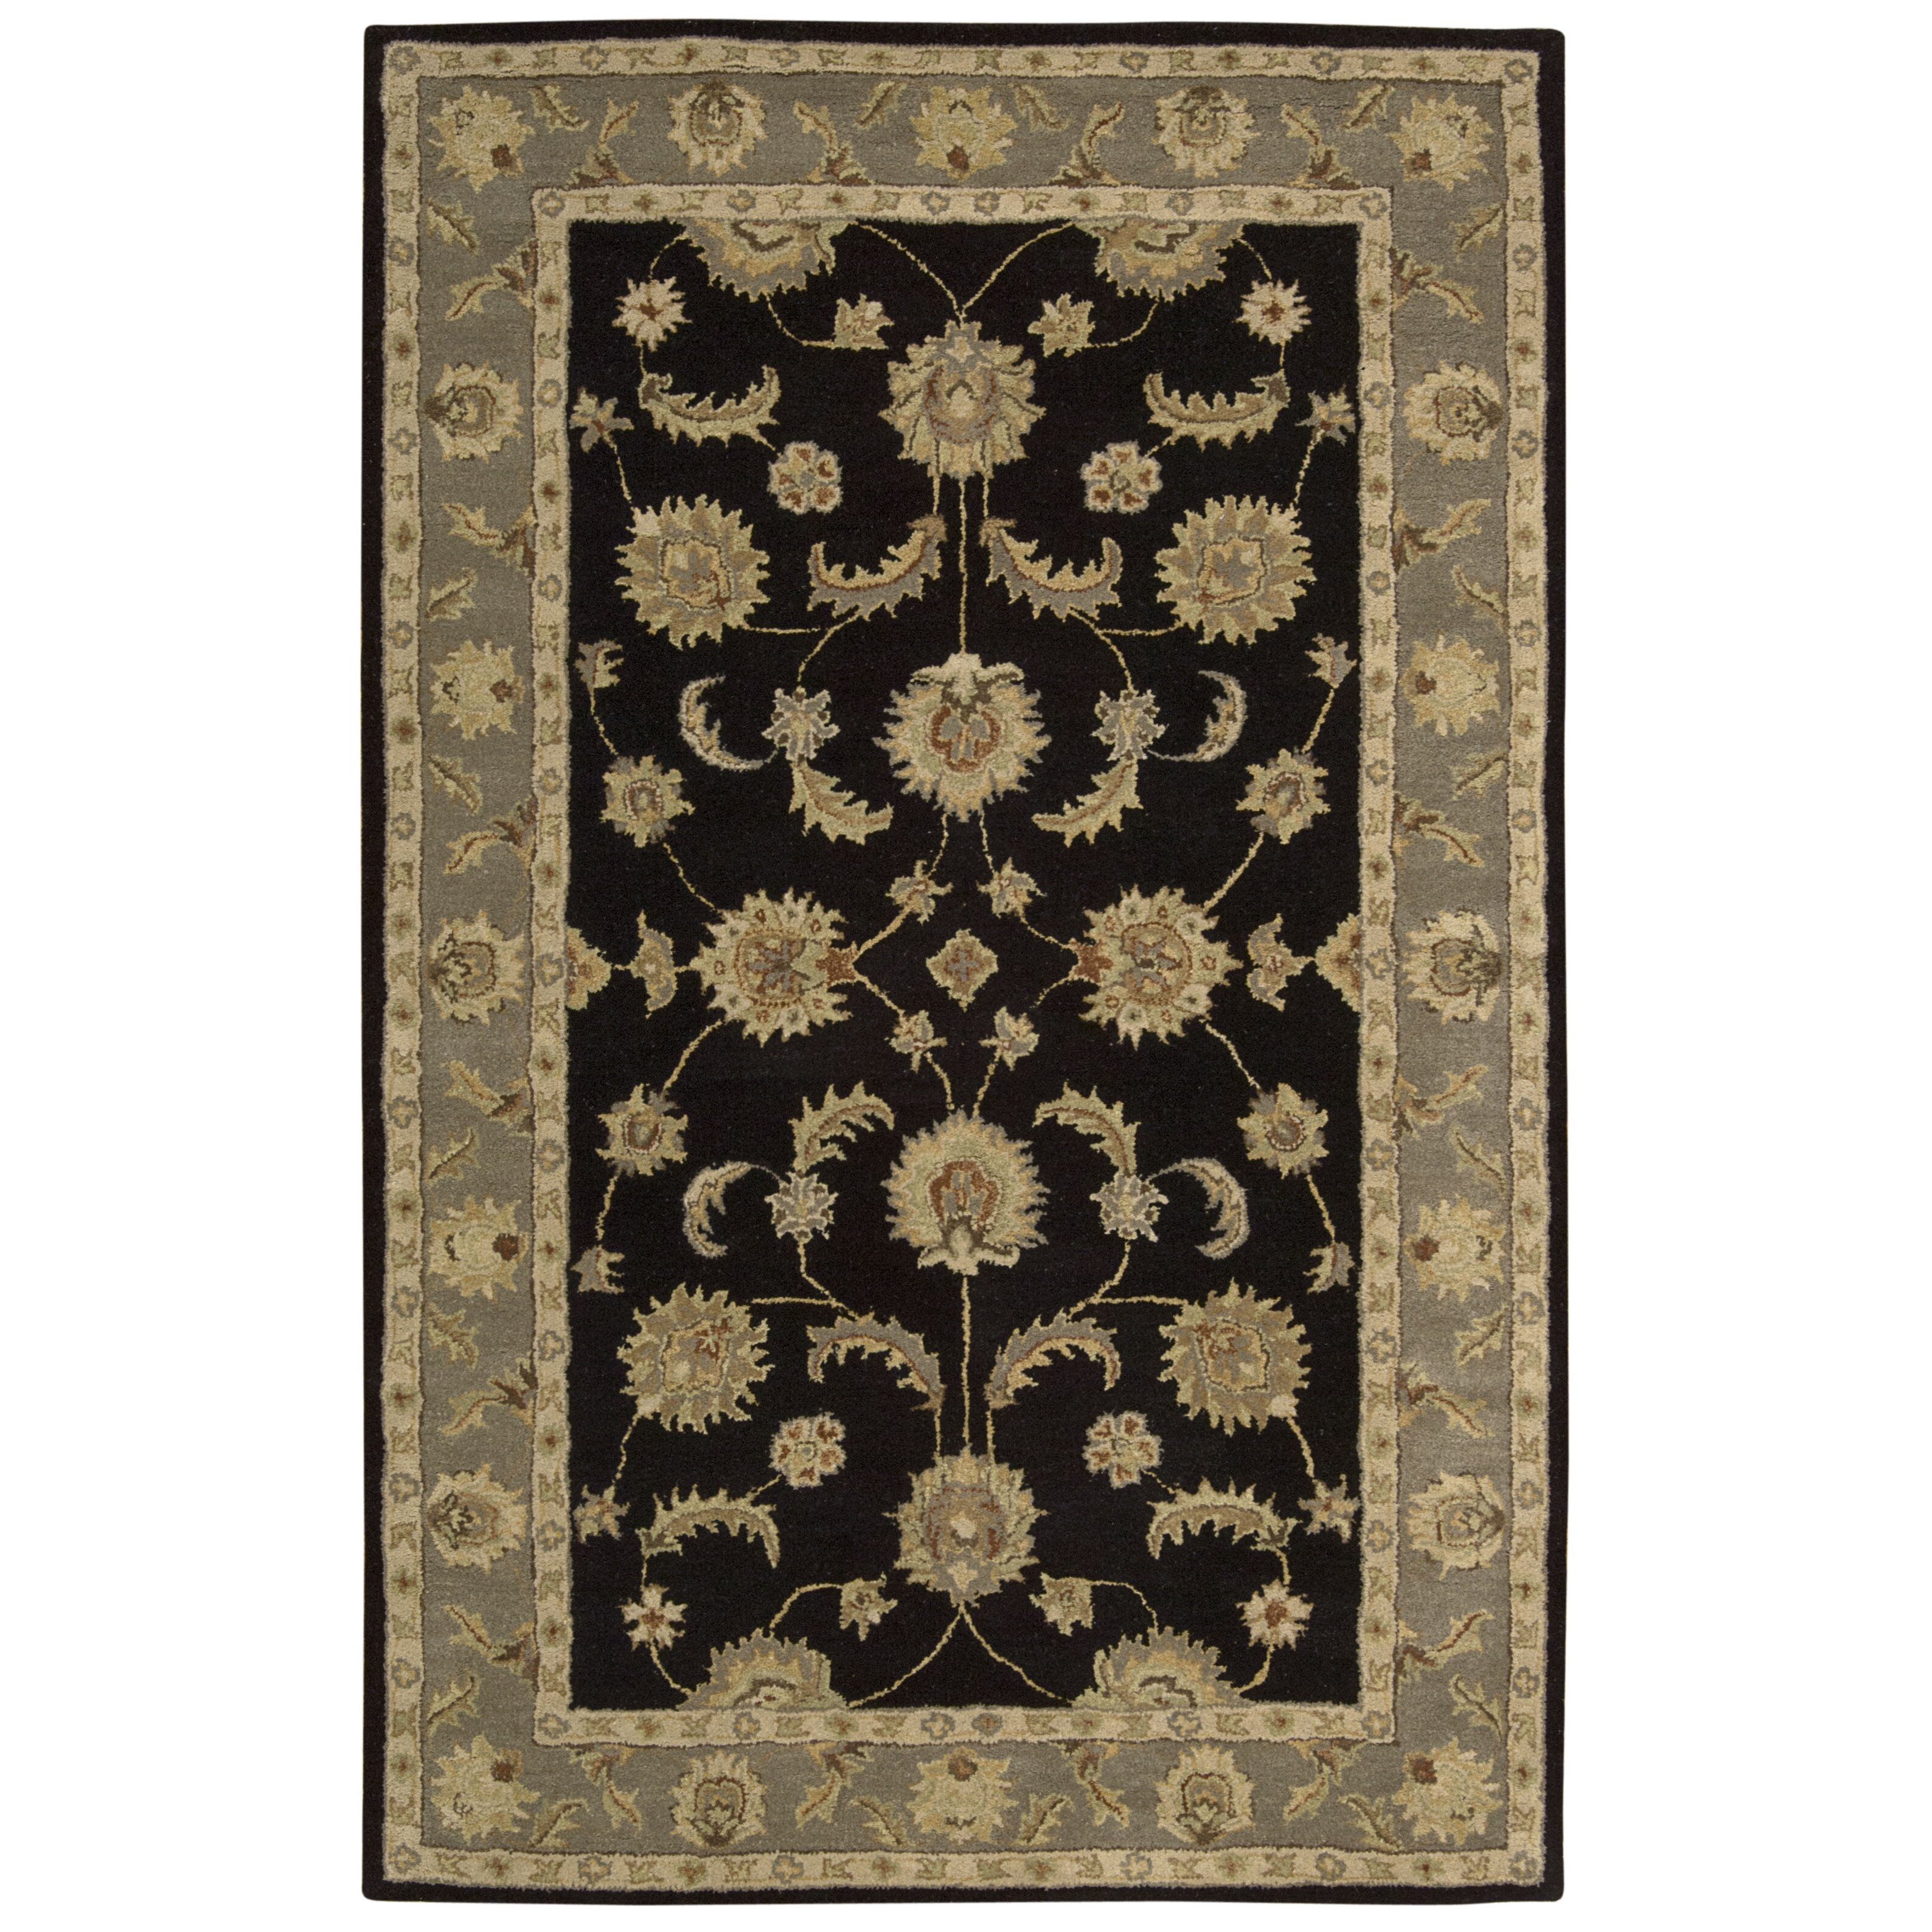 Area Rugs From India: India House Black Area Rug